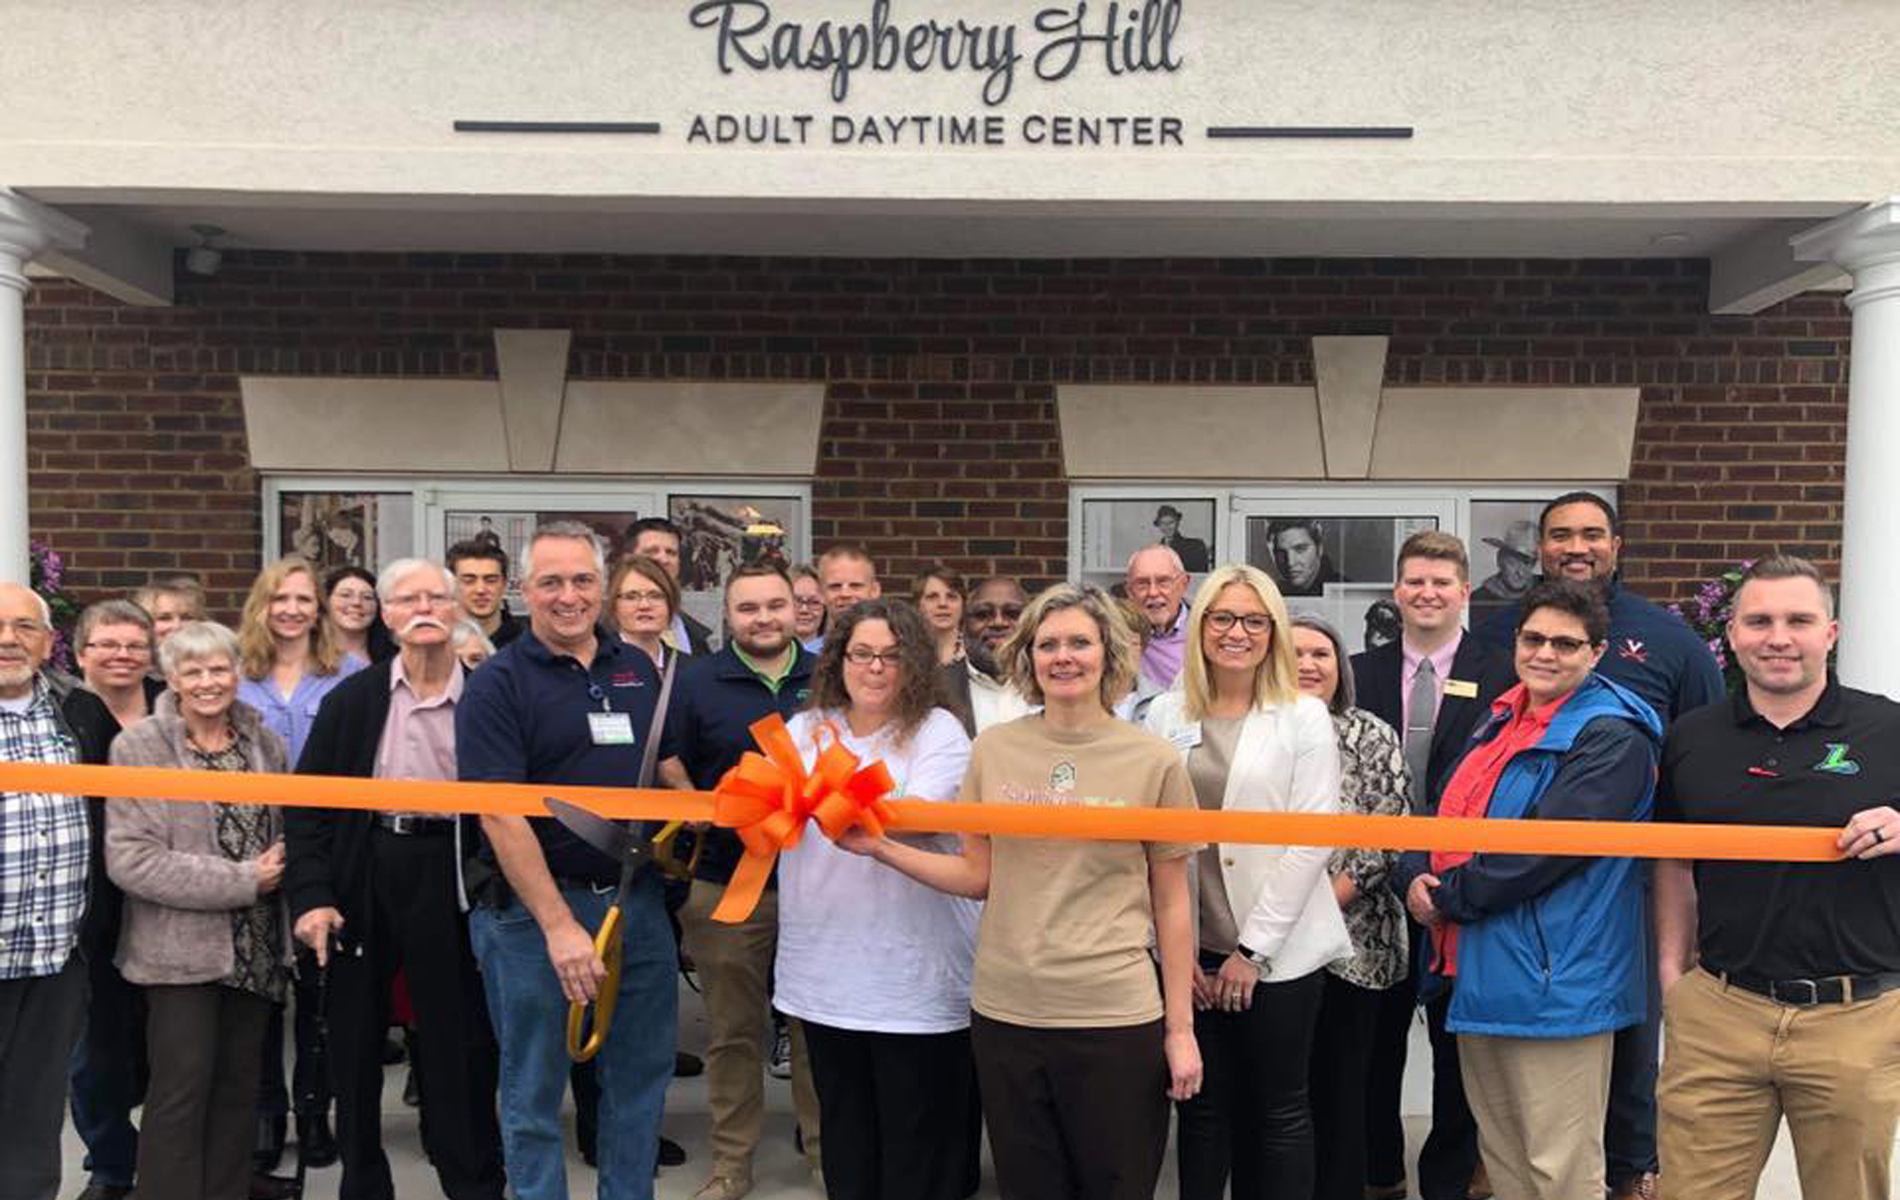 Raspberry Hill Adult Daytime Center